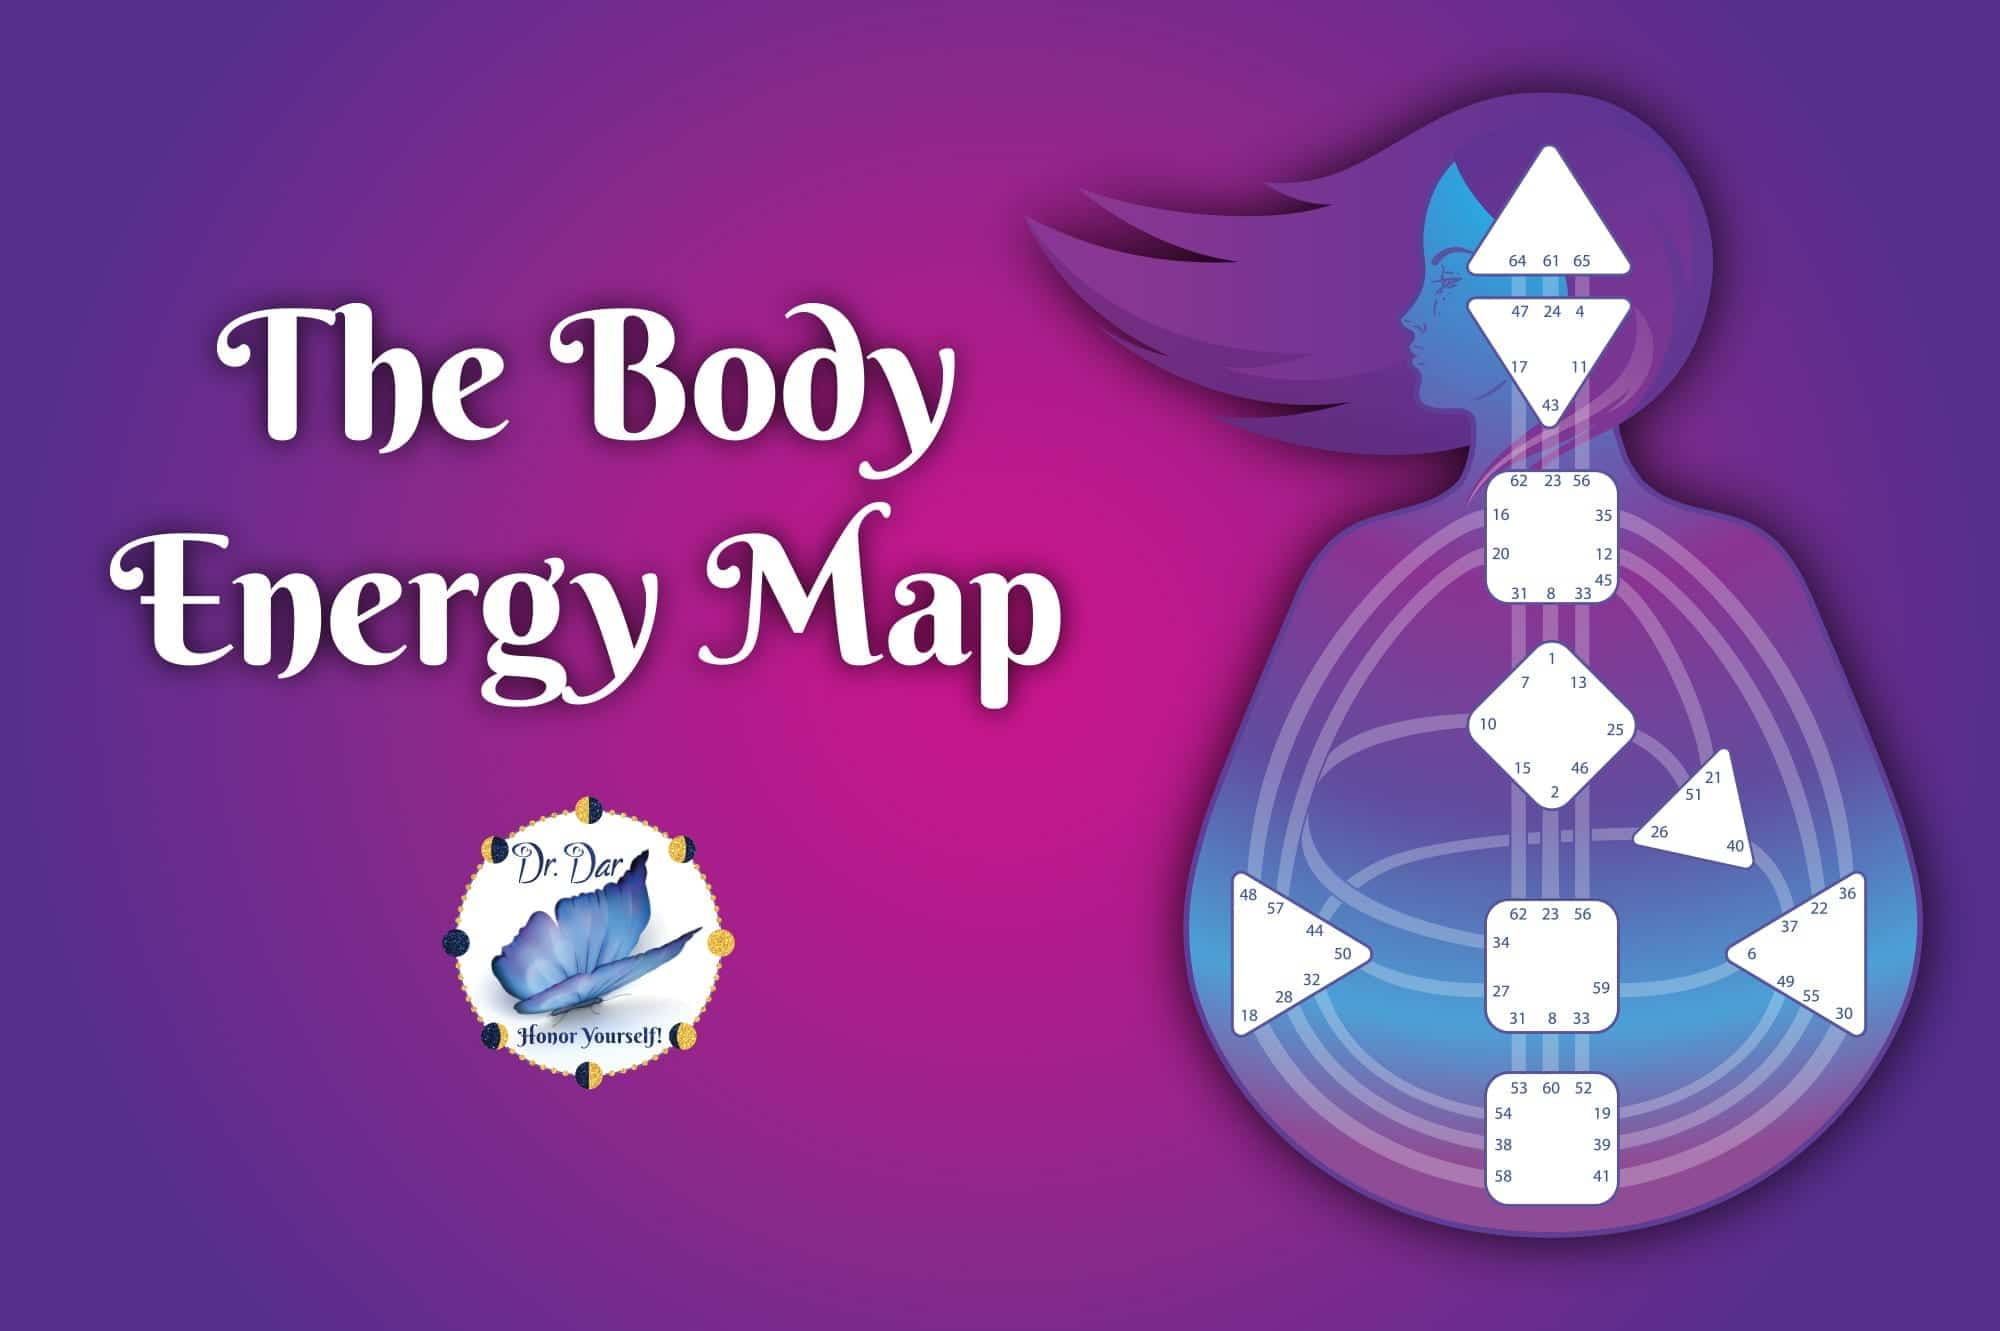 Body Energy Map - Dr. Dar Hawks Inspired by Human Design